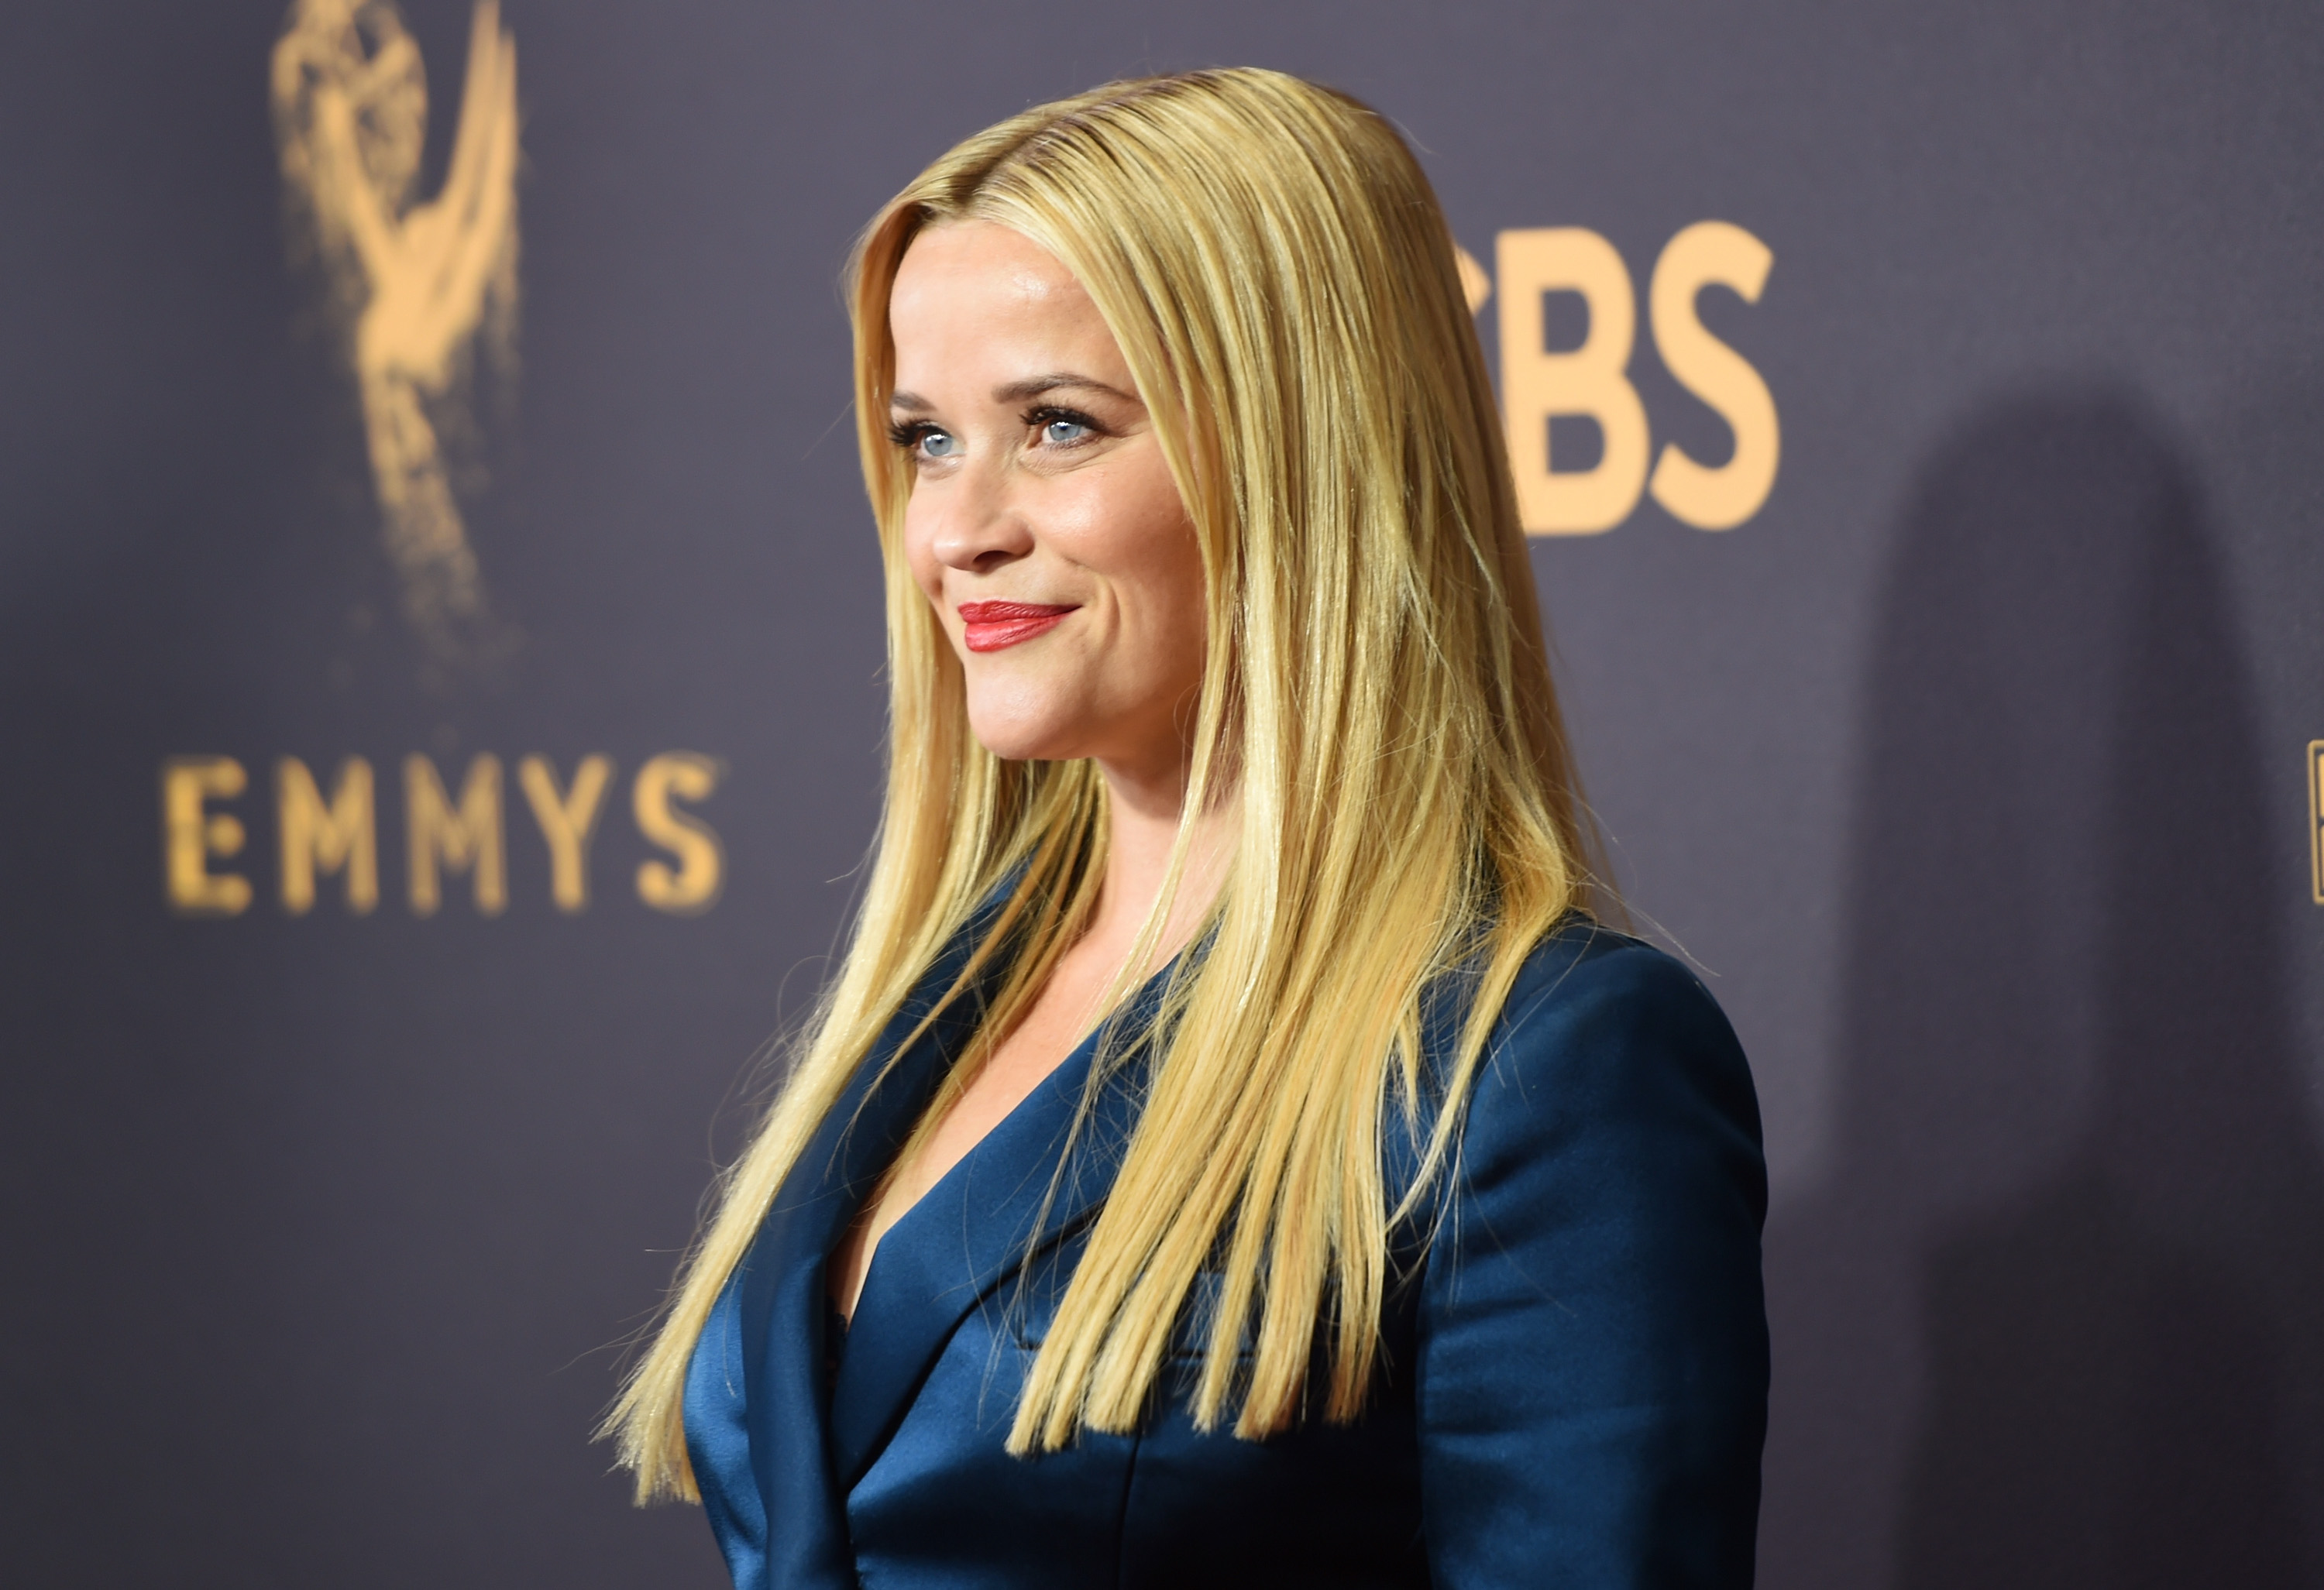 CelebrityReese Witherspoon Is Being Sued Over 'Gone Girl'The blockbuster thriller may have landed her in hot